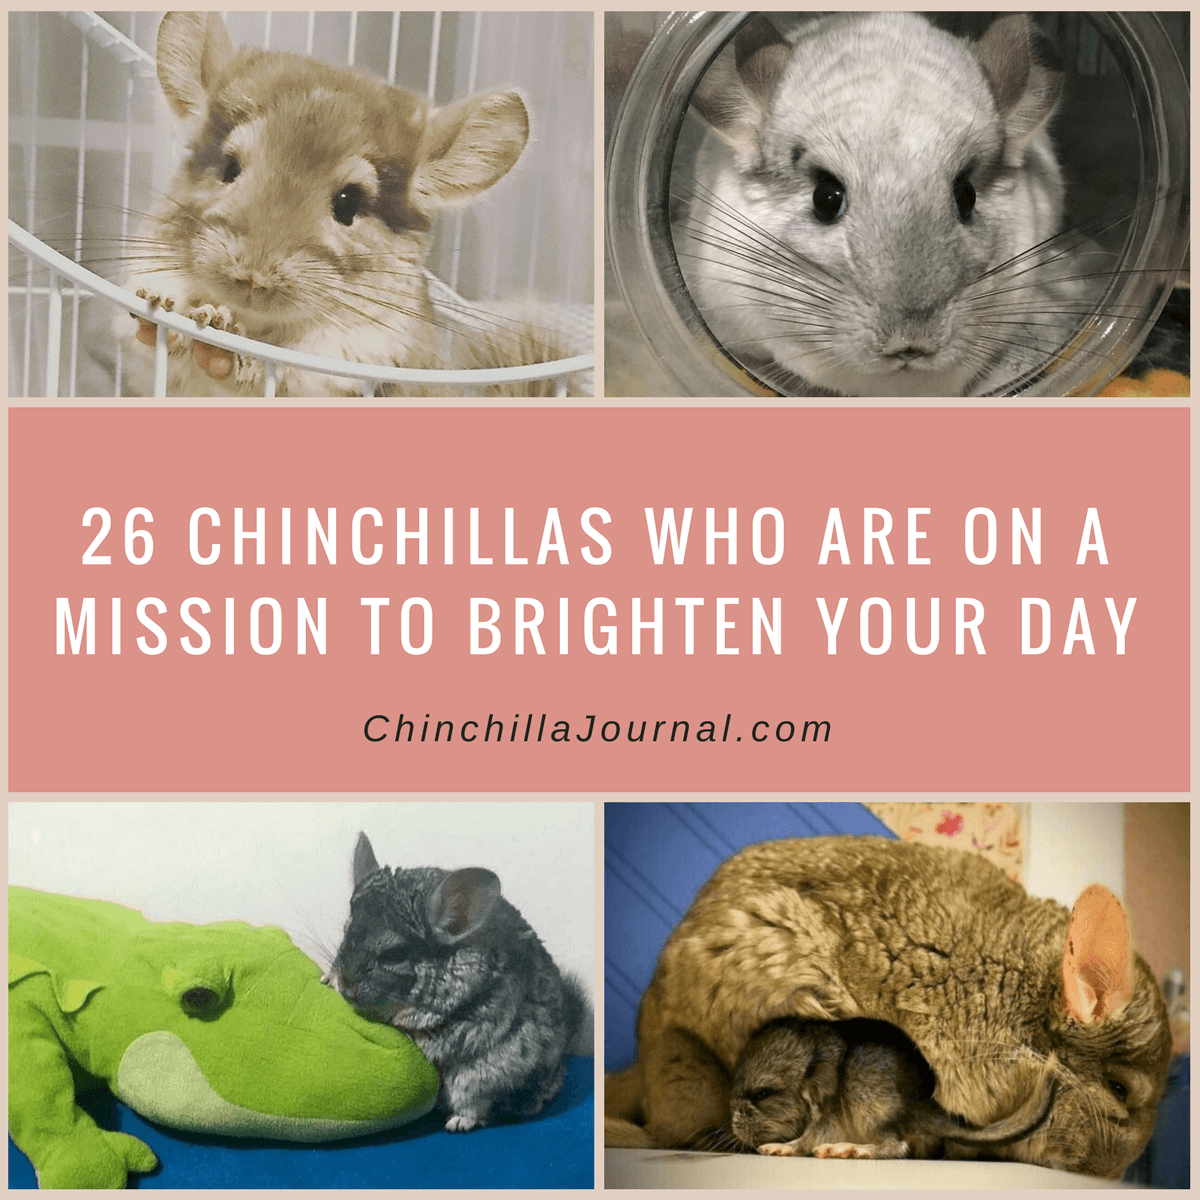 26 Chinchillas Who Are On A Mission To Brighten Your Day